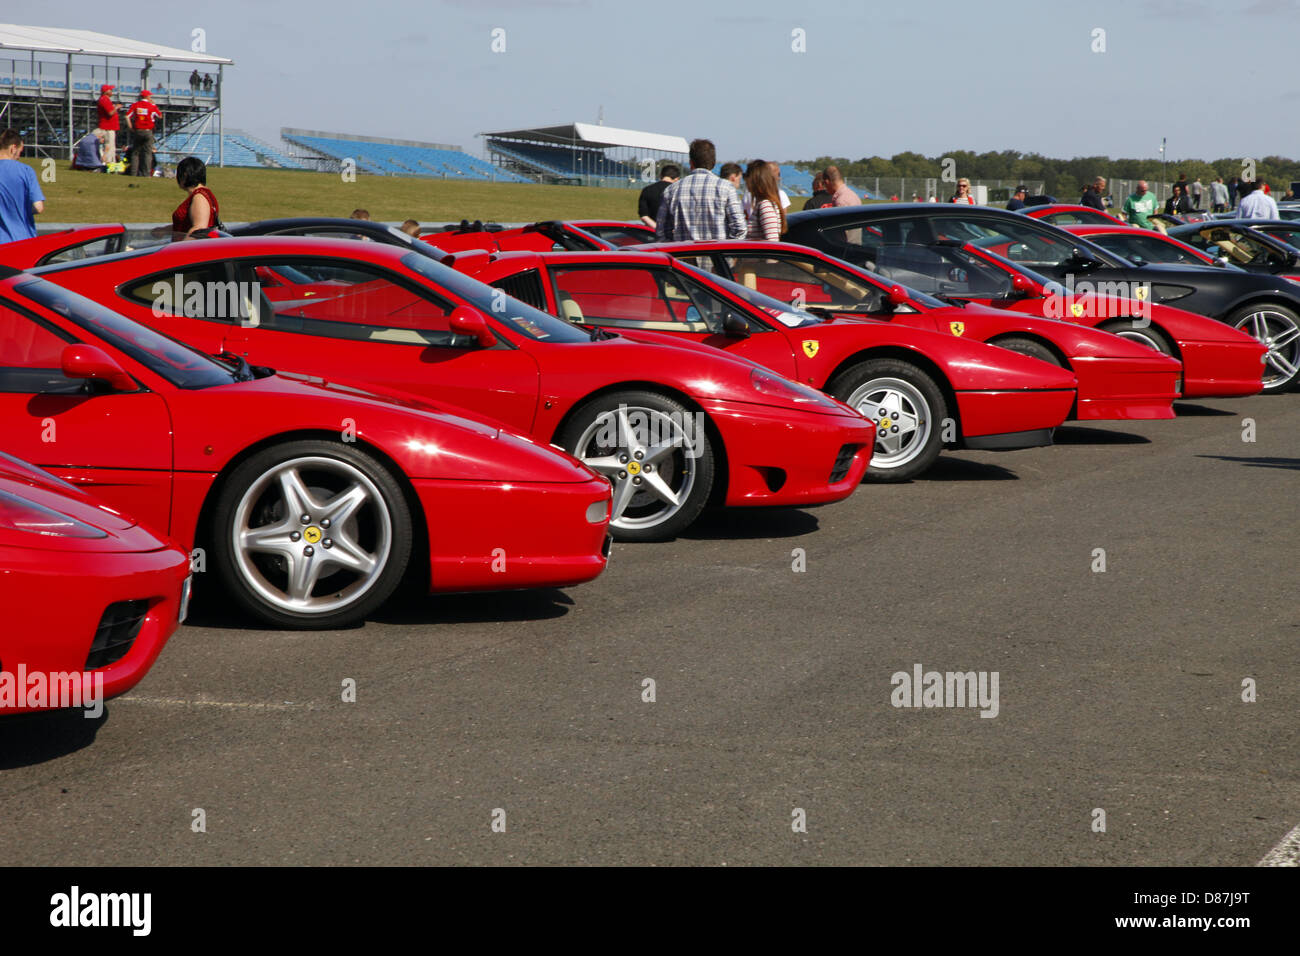 LINE OF RED FERRARI CARS SILVERSTONE ENGLAND 17 September 2012 - Stock Image